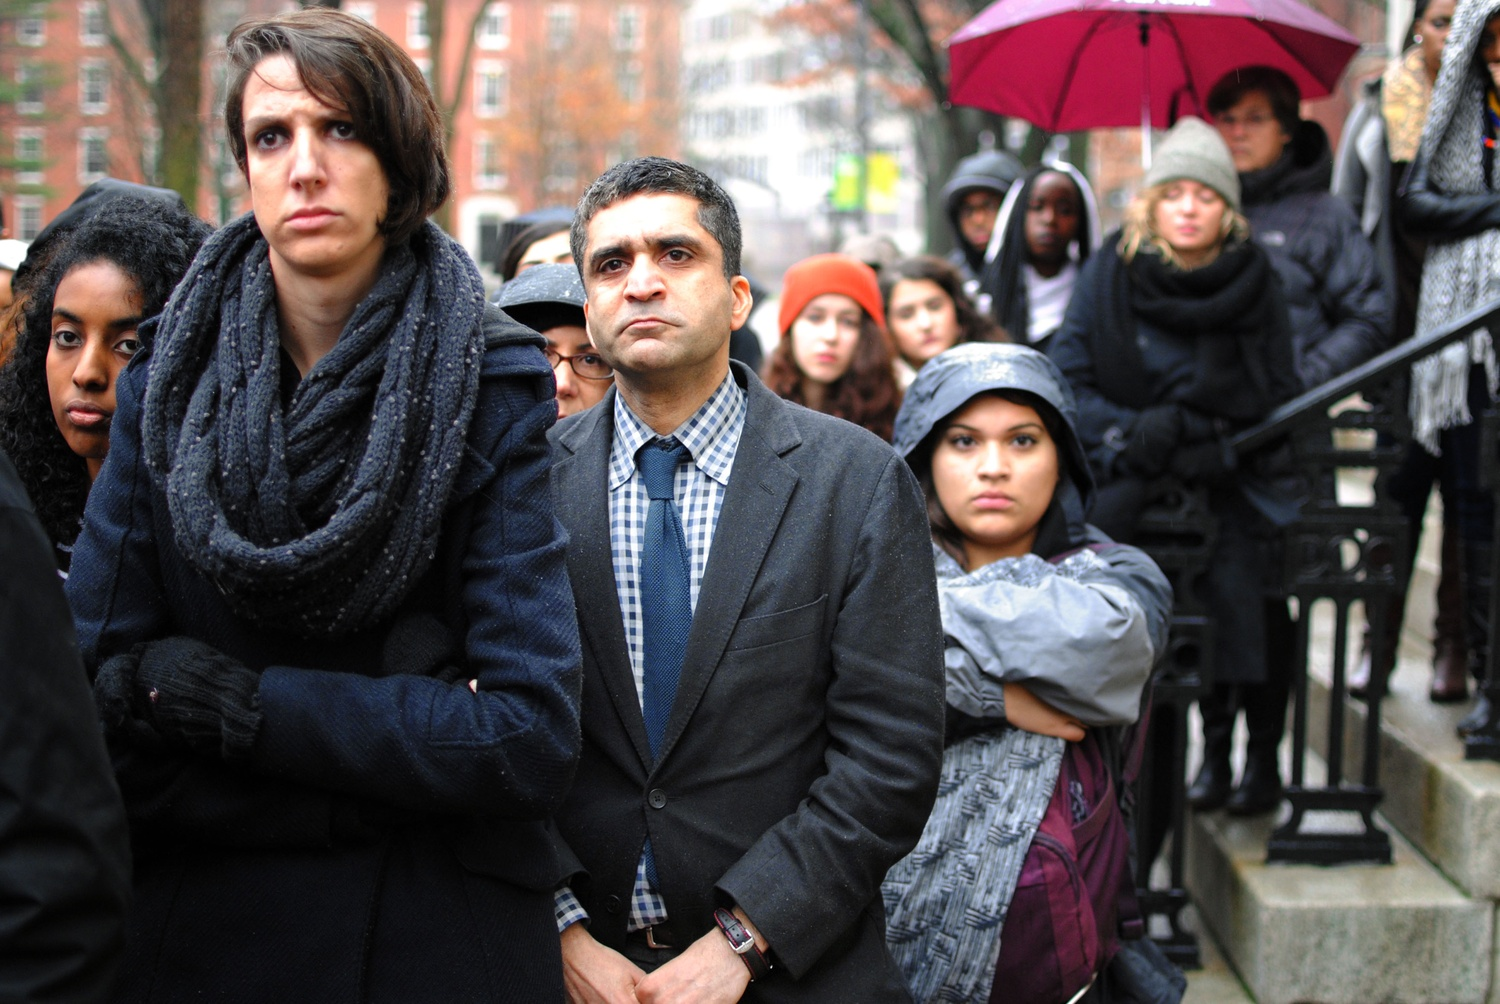 Dean of Harvard College Rakesh Khurana stands among members of the Harvard community at a protest in December outside University Hall in 2014.